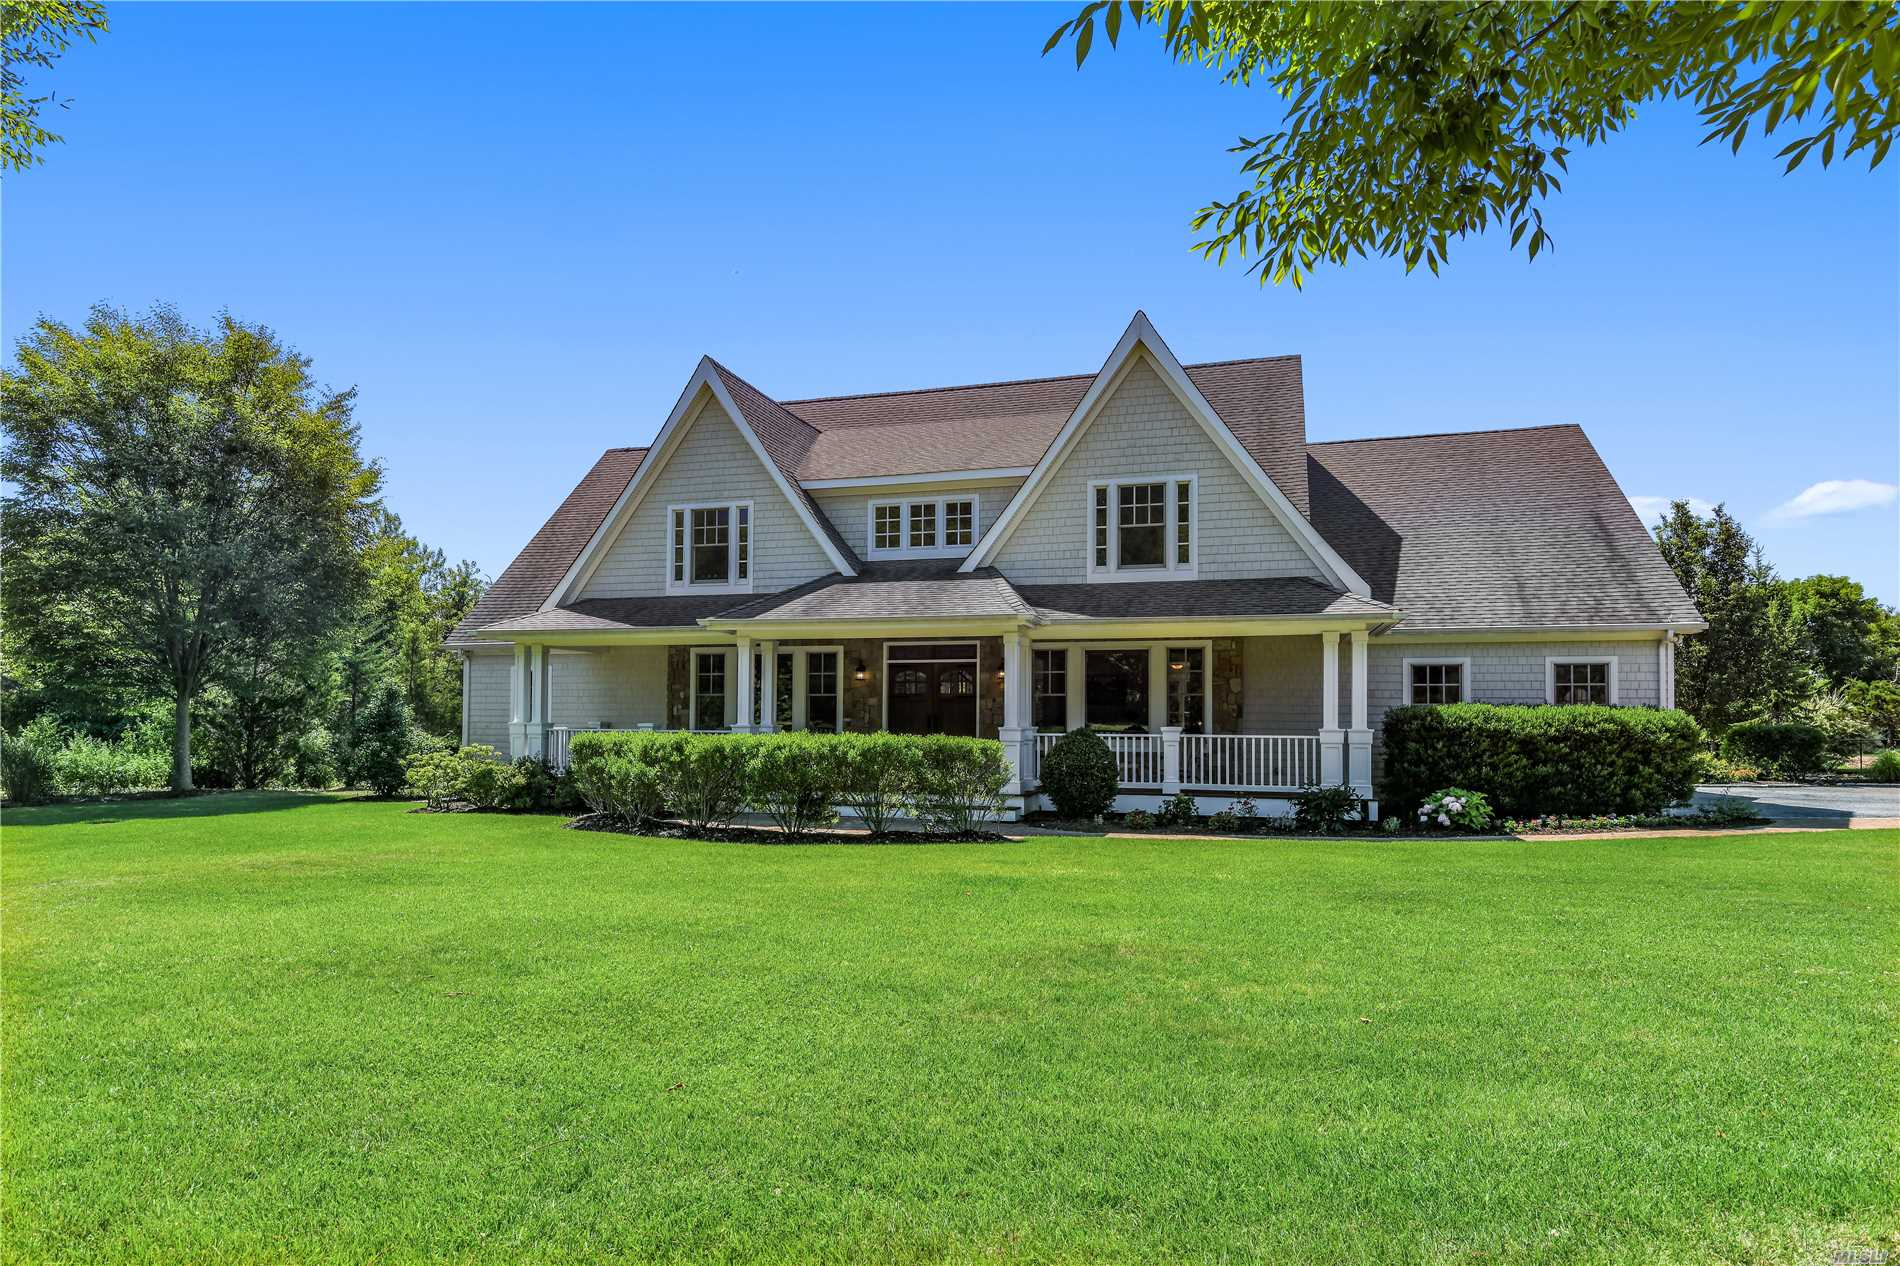 2655 Stanley Rd - Mattituck, New York